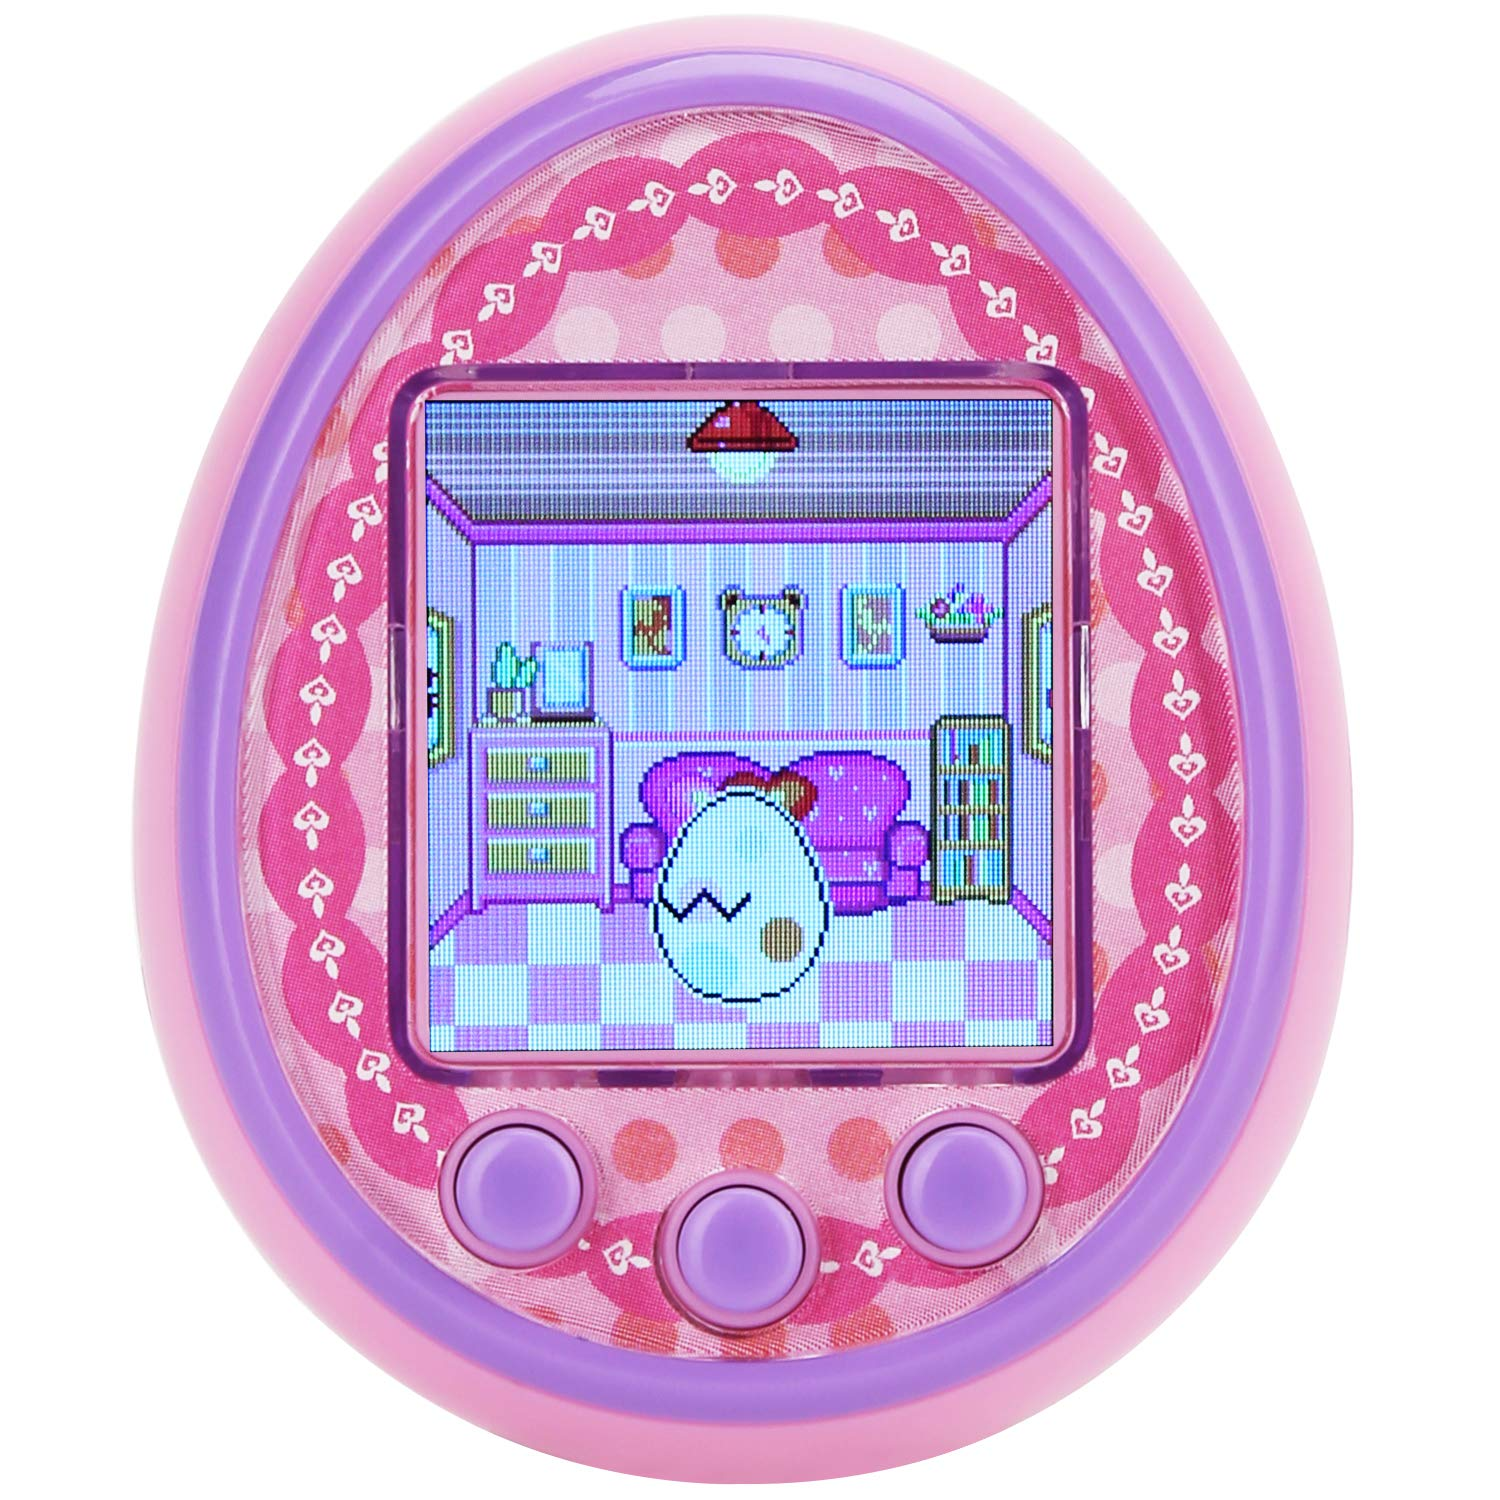 Virtual Digital Pets Toys Electronic Pets Game Machine HD Color Screen for Over 6 Years Old Child Toy 2019 New Version as a Best Birthday Gift for Boys Girls by Touma pets (Image #1)